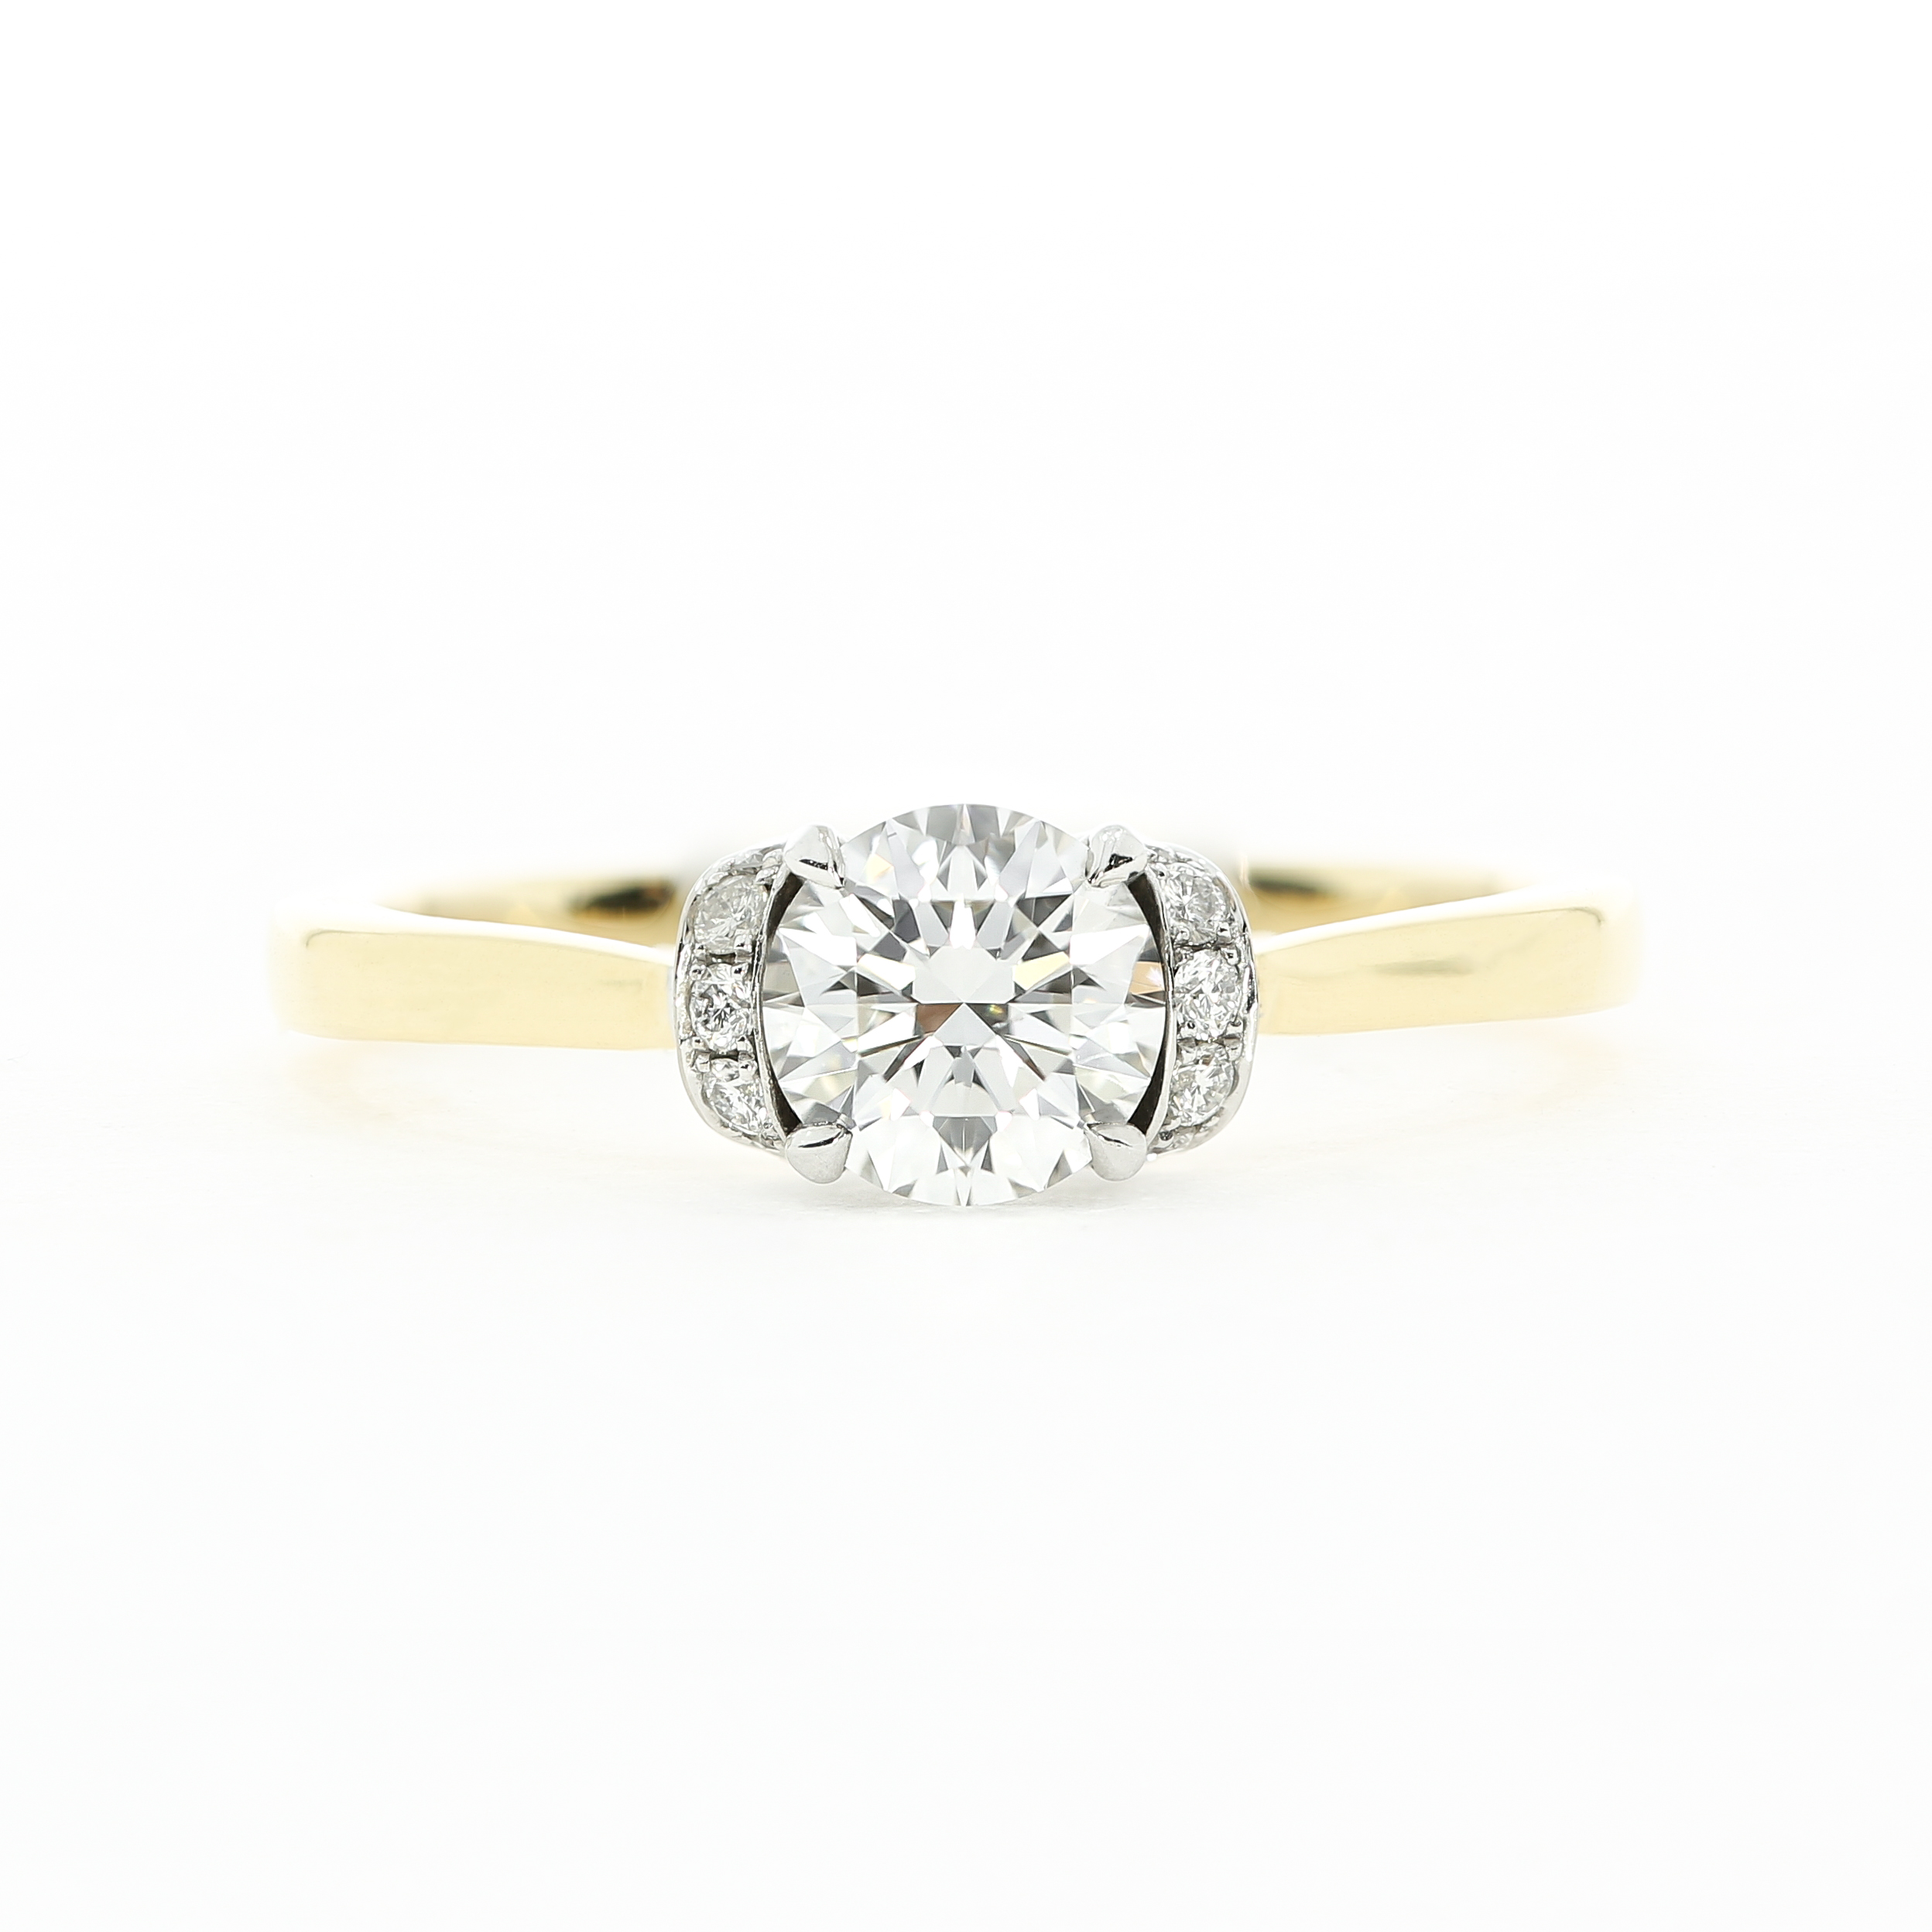 The  Garland Pavé  engagement ring